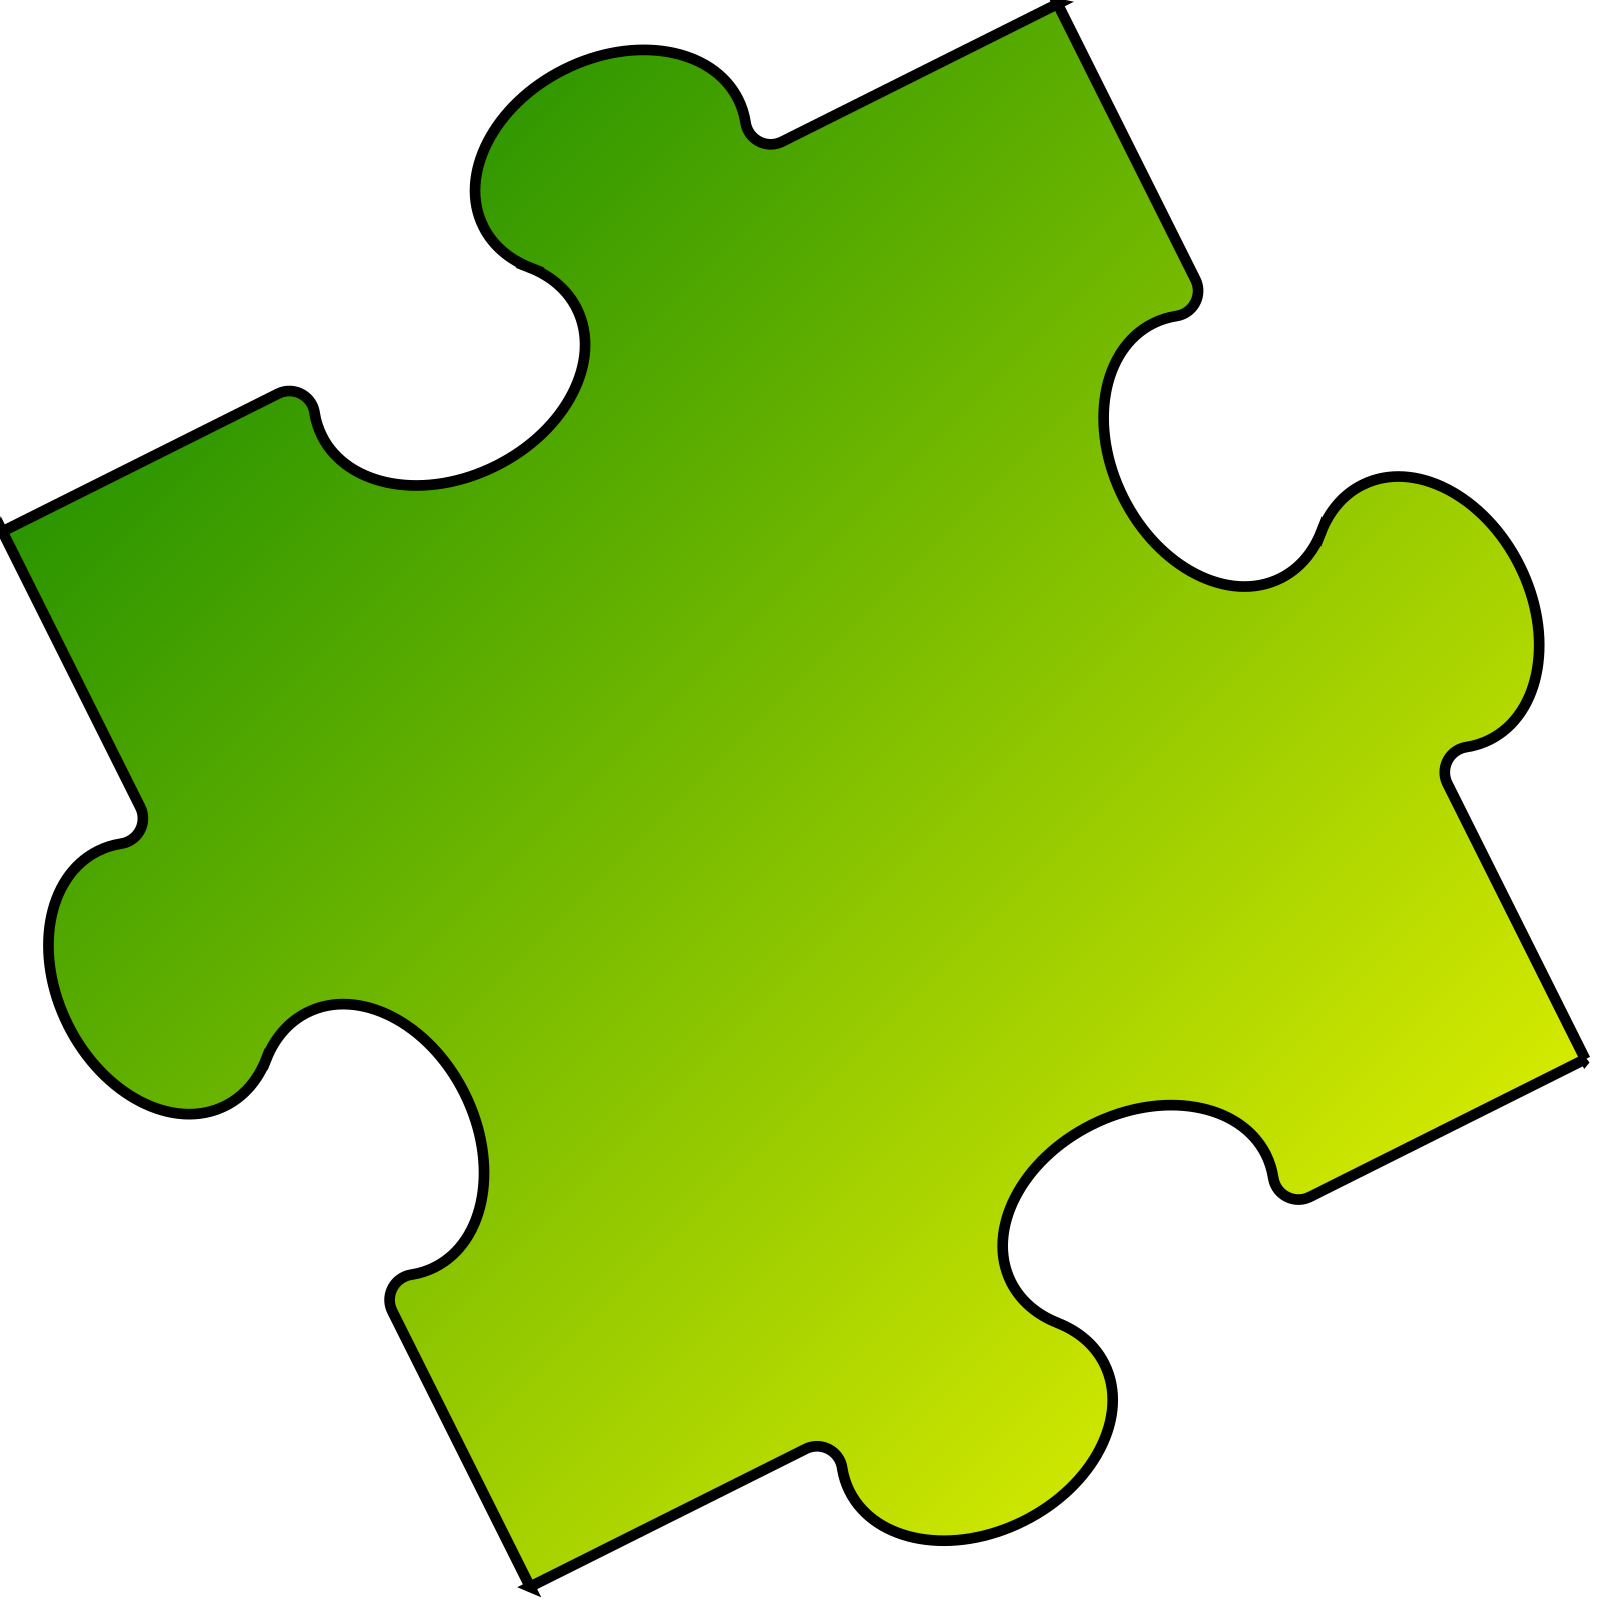 Puzzle piece small. Yellow green clip art